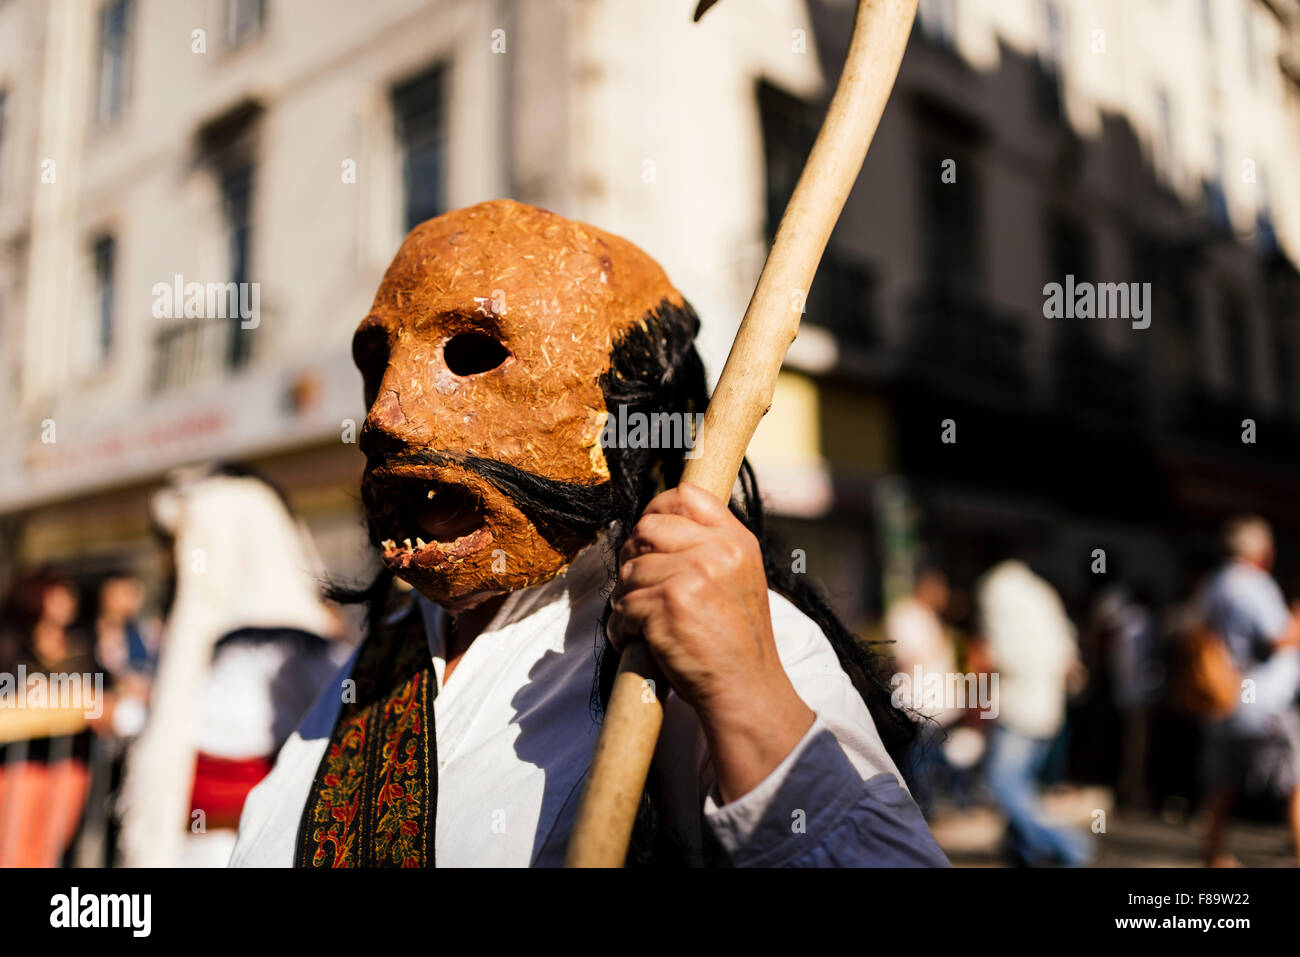 International Festival Iberian Mask, Lisbon, Portugal - Stock Image